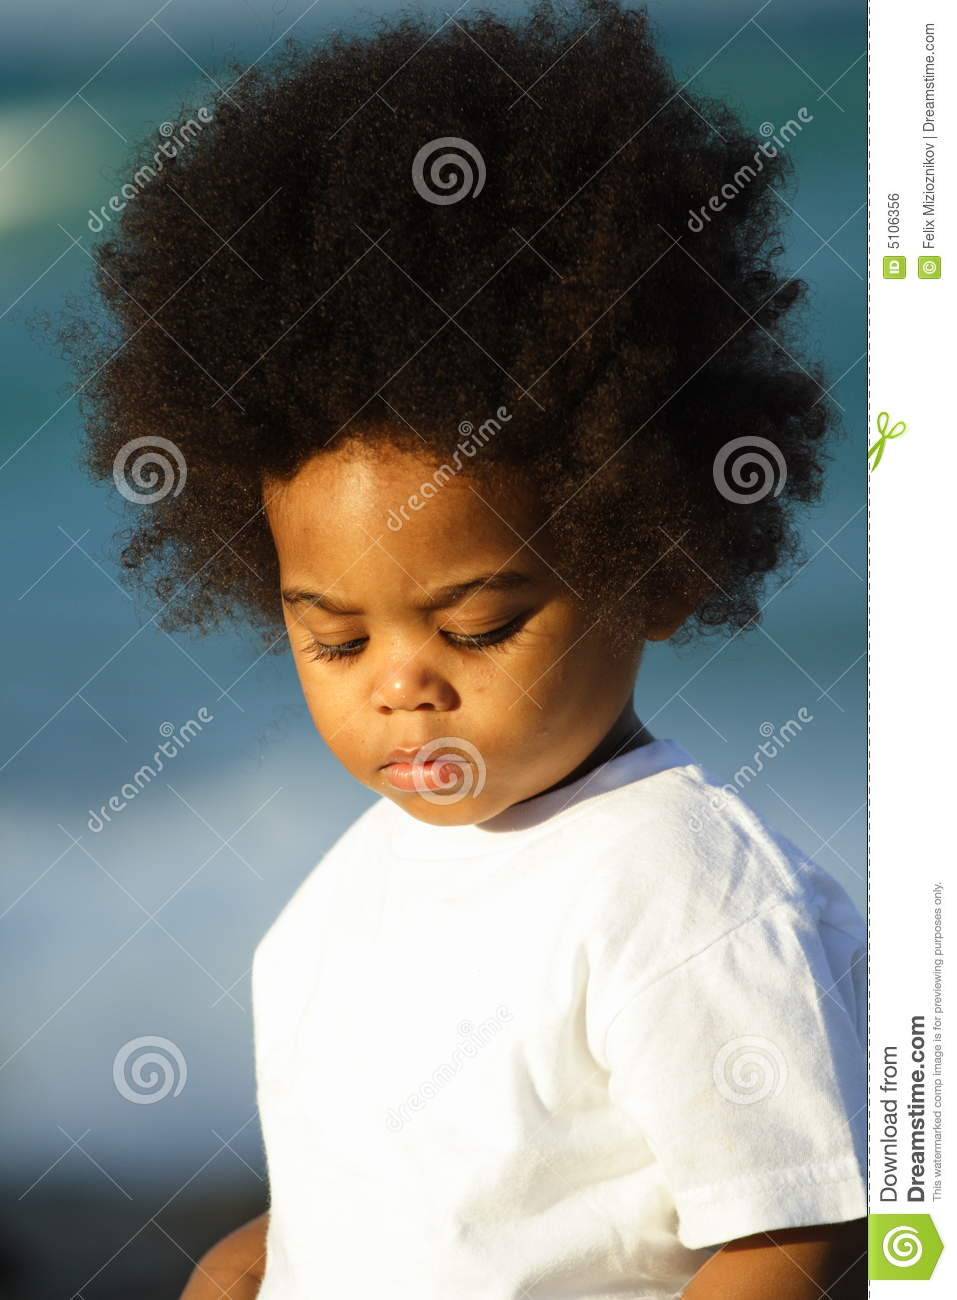 Young Boy With Afro Hairstyle Royalty Free Stock Image